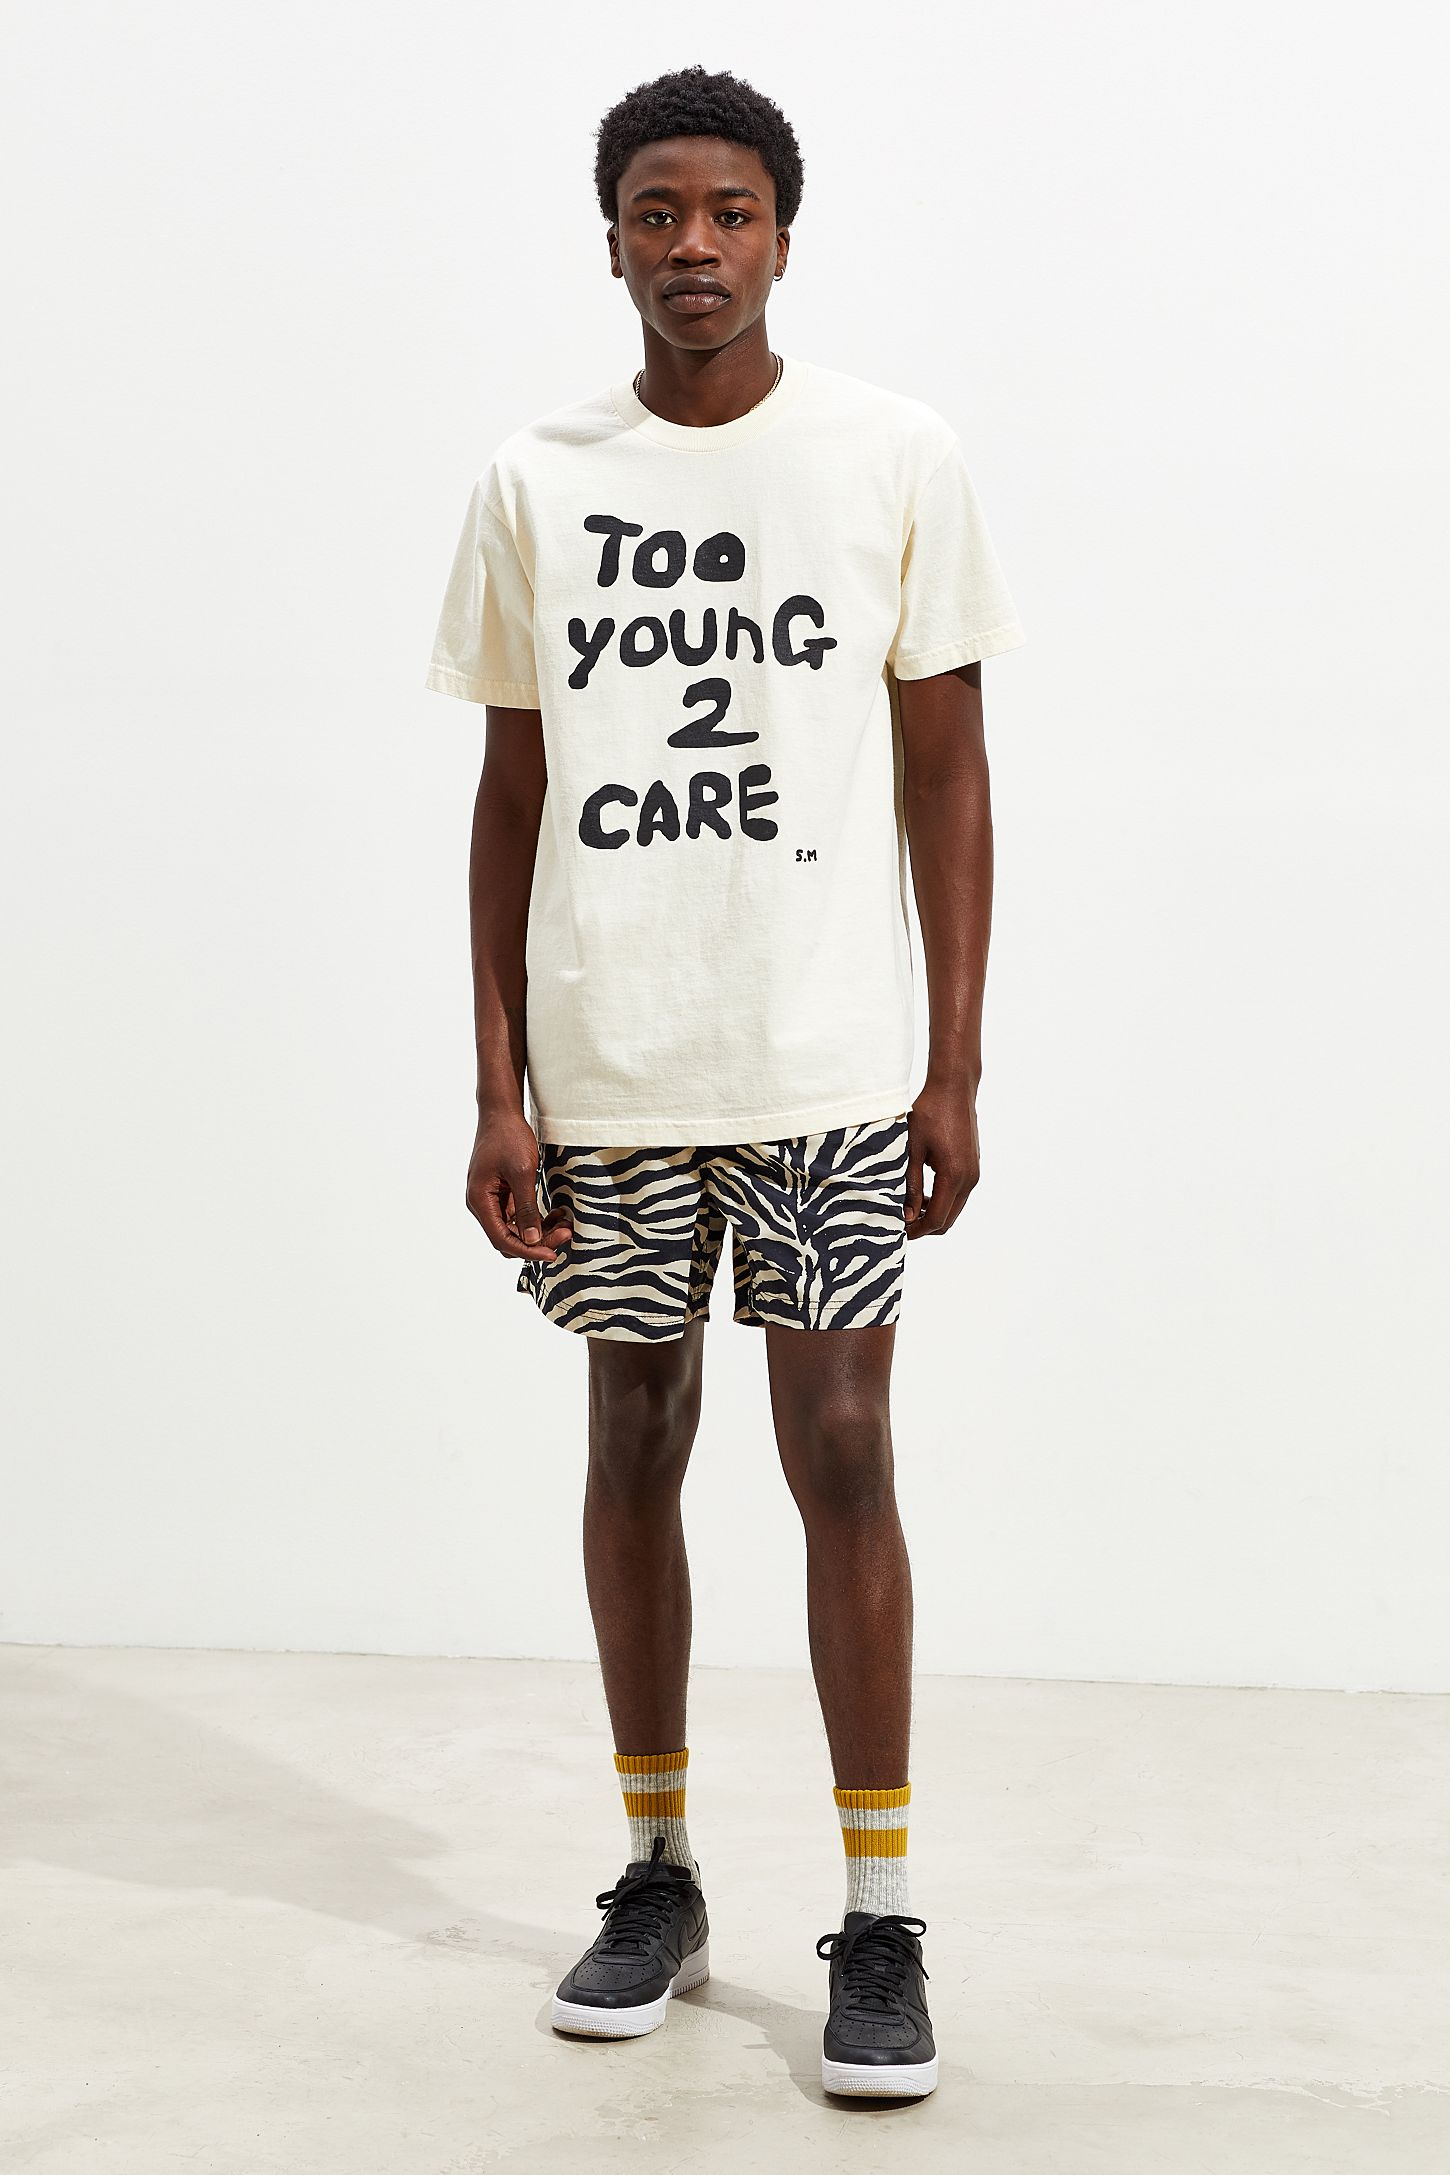 b76842c24 Skim Milk Too Young 2 Care Tee   Urban Outfitters